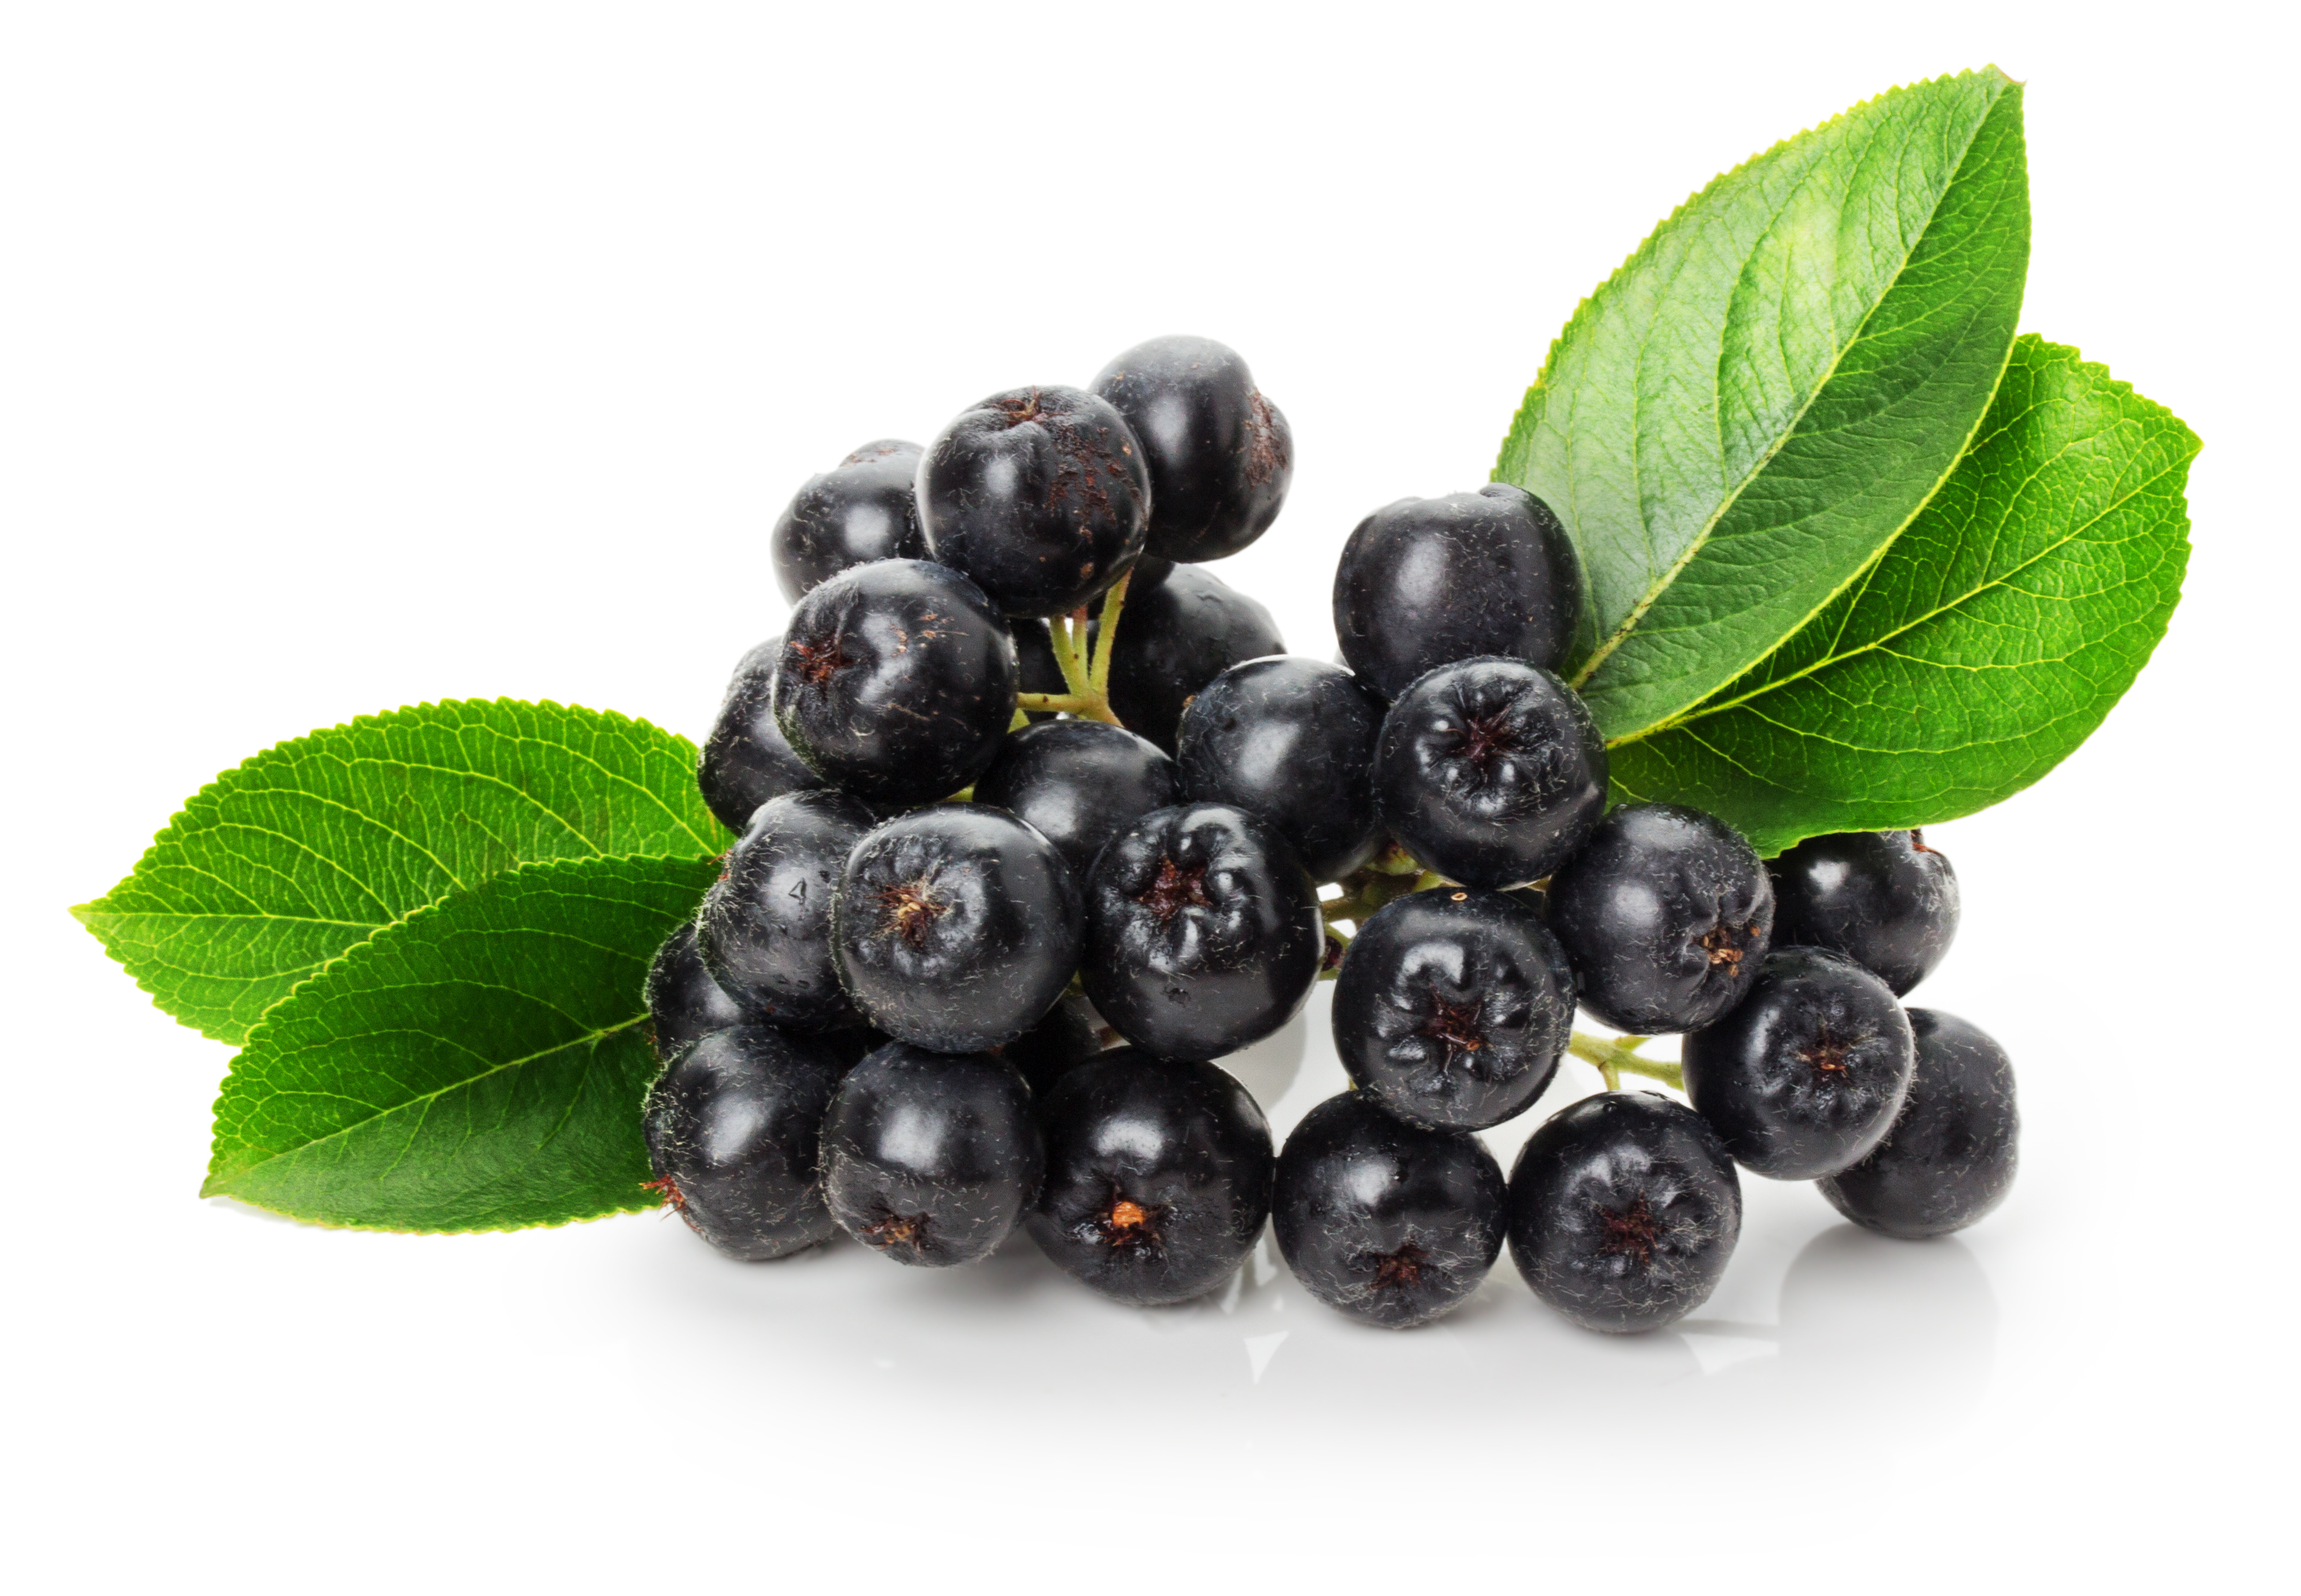 Introducing the aronia berry